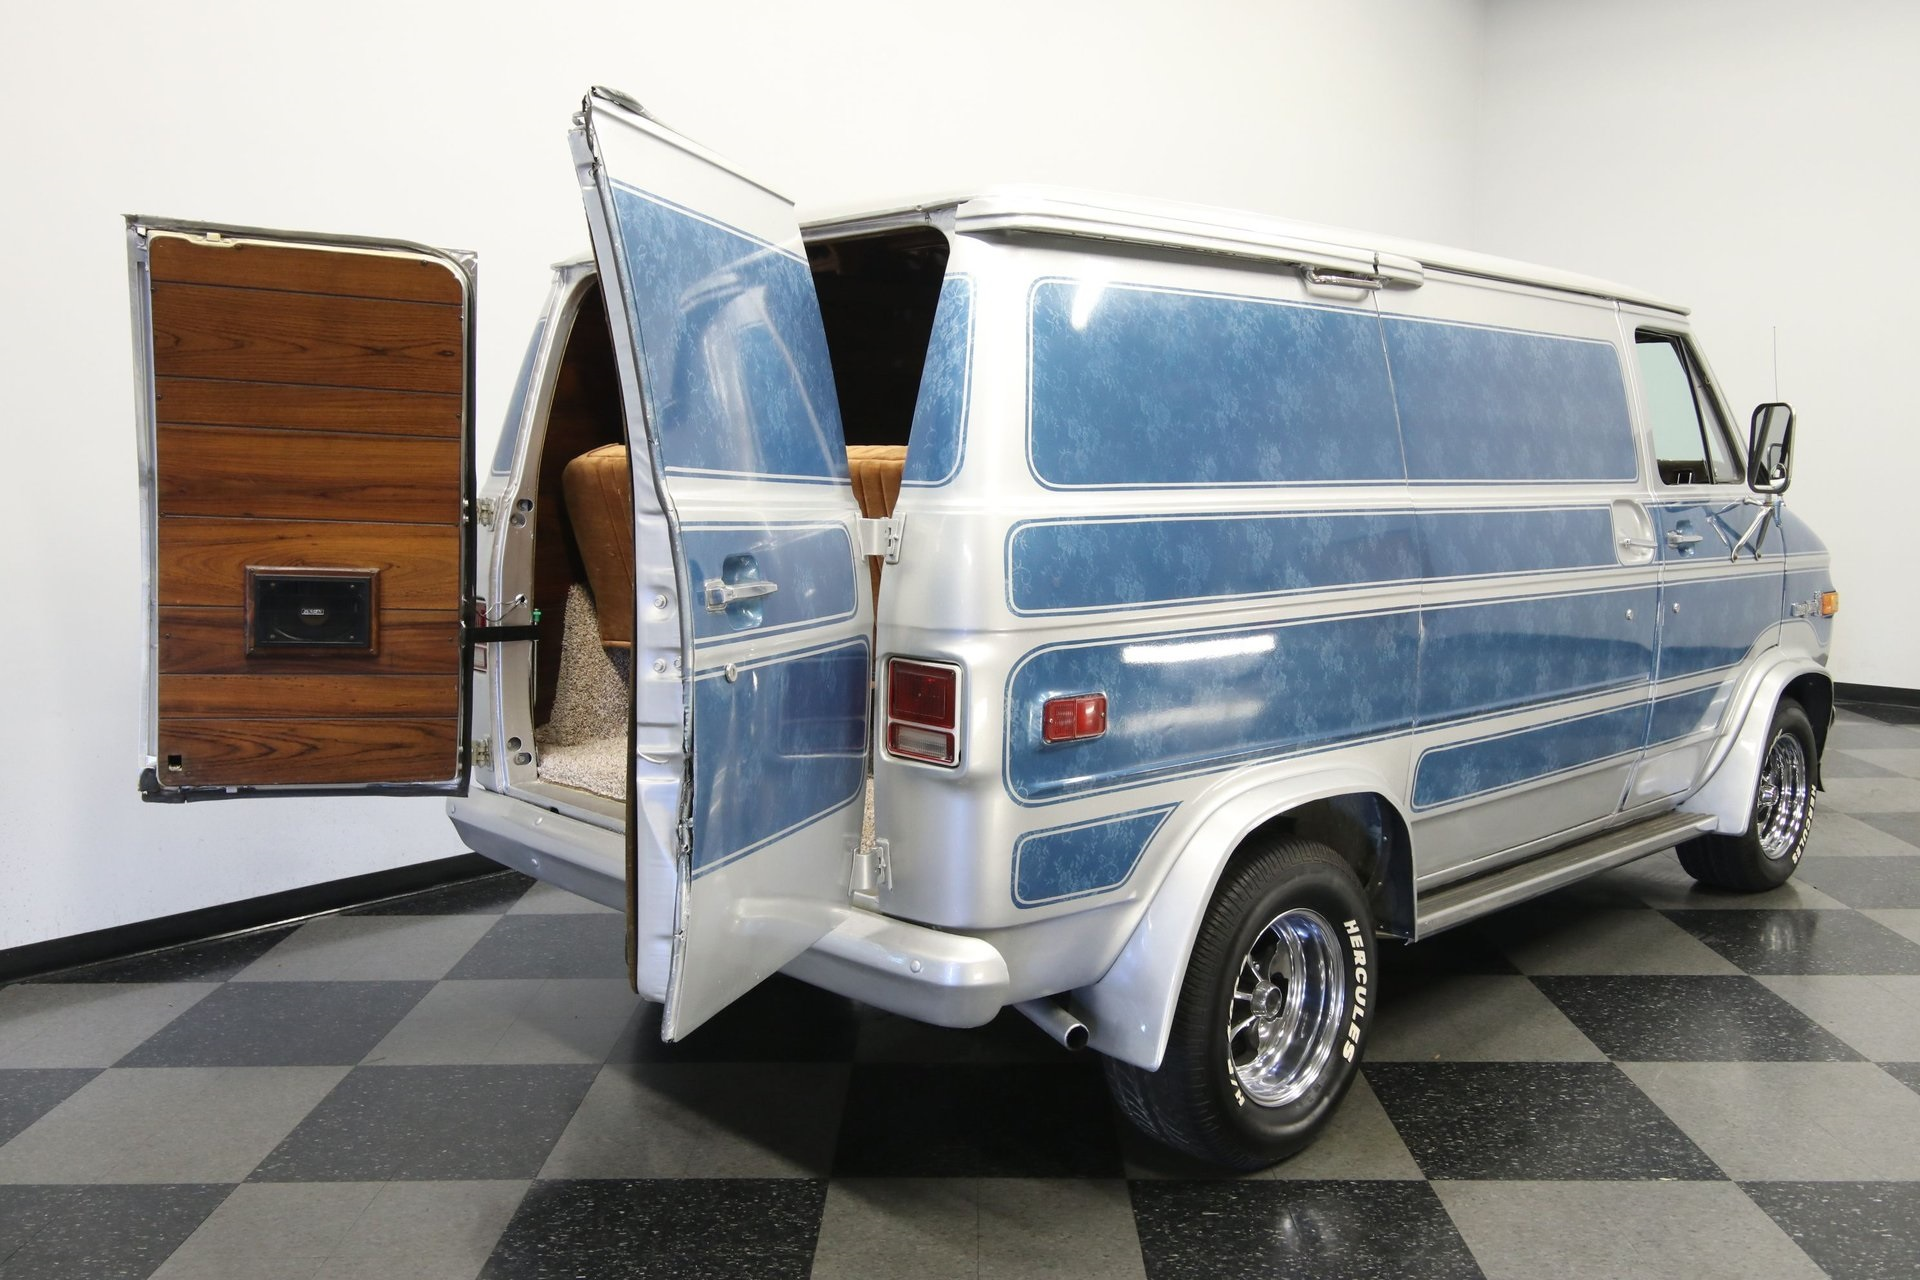 1977-chevrolet-g20-shorty-van-rddj8